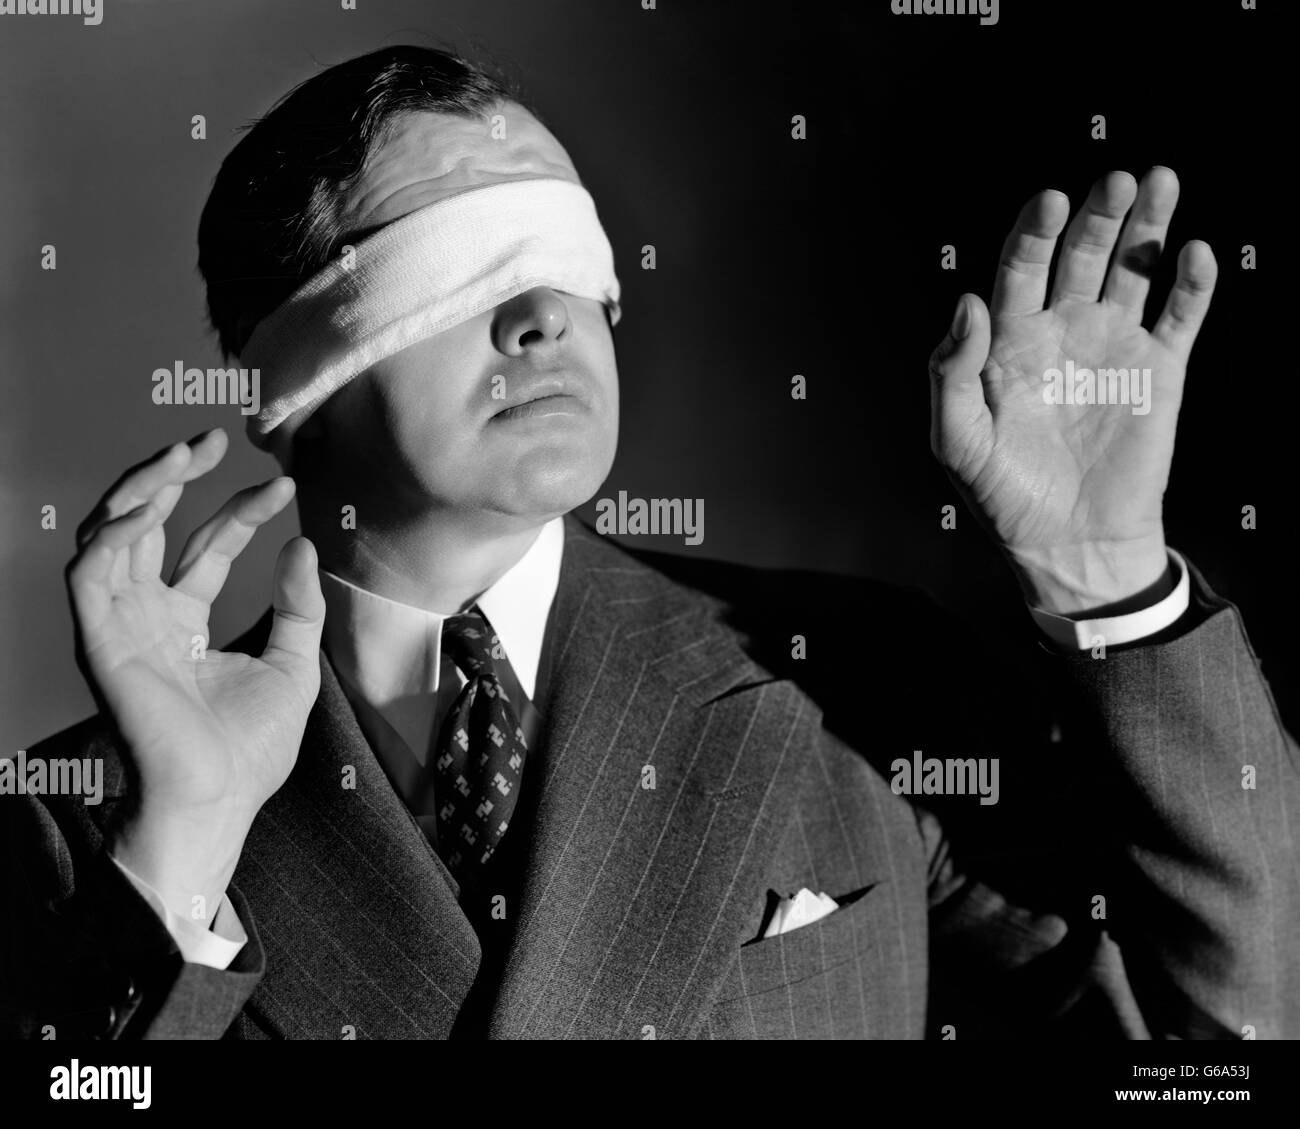 1930s 1940s BUSINESSMAN WEARING BLINDFOLD REACHING FORWARD WITH HANDS - Stock Image